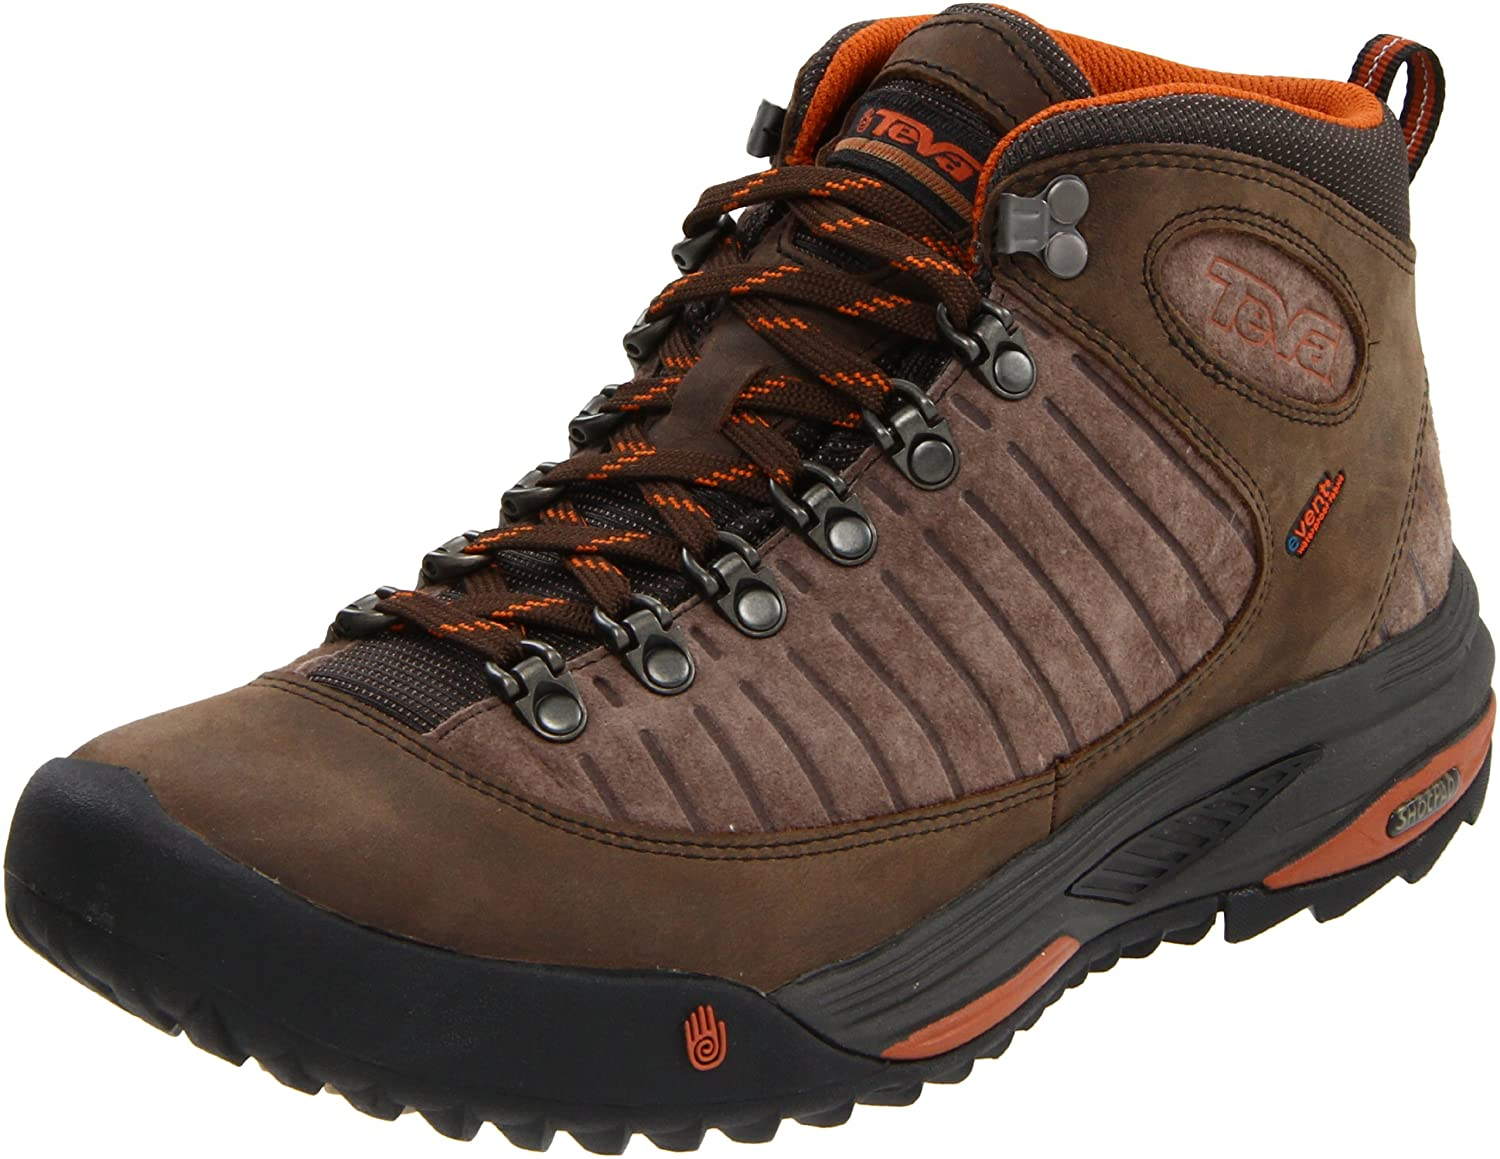 Teva Men's Forge Pro Event Leather Hiking Boot